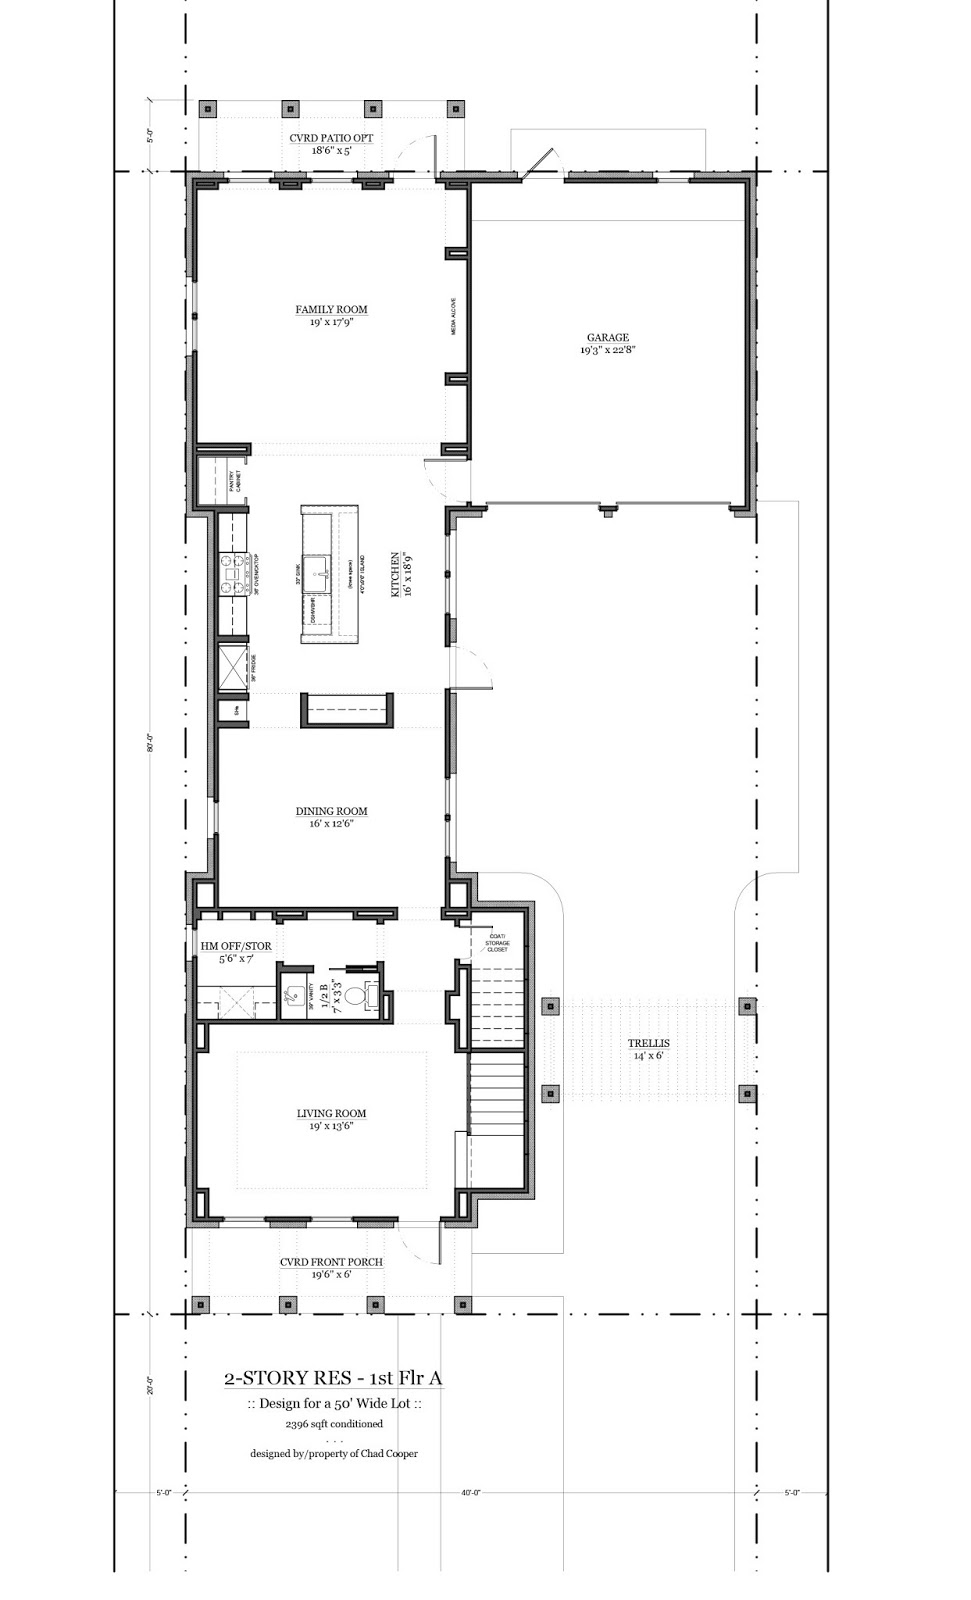 New urban guild pin up space floor plans for a front for New urbanism house plans